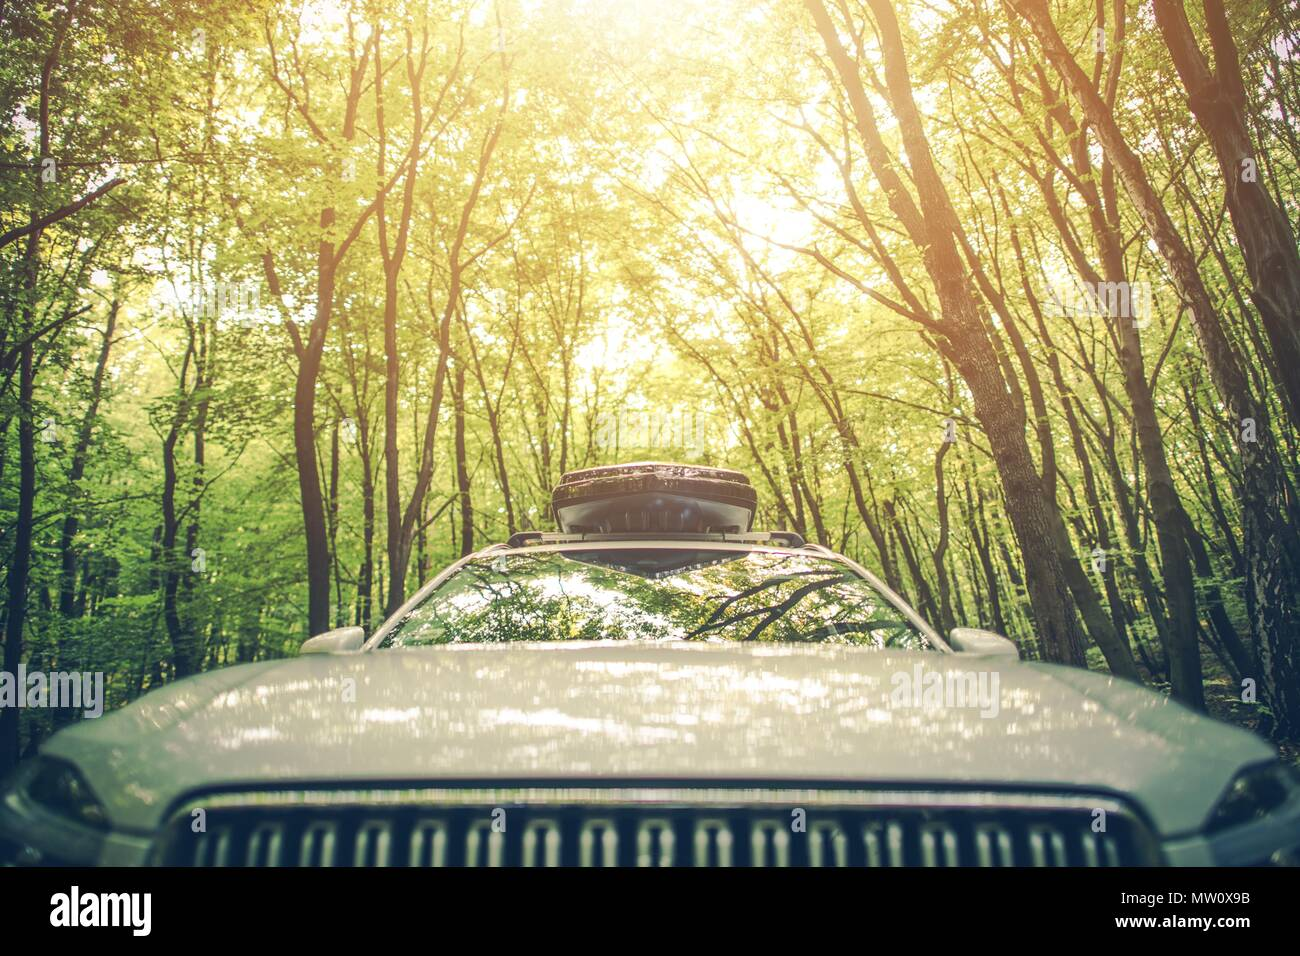 Vacation Road Trip with Cargo Roof Container on the Vehicle. Driving Through The Summer Forest. - Stock Image